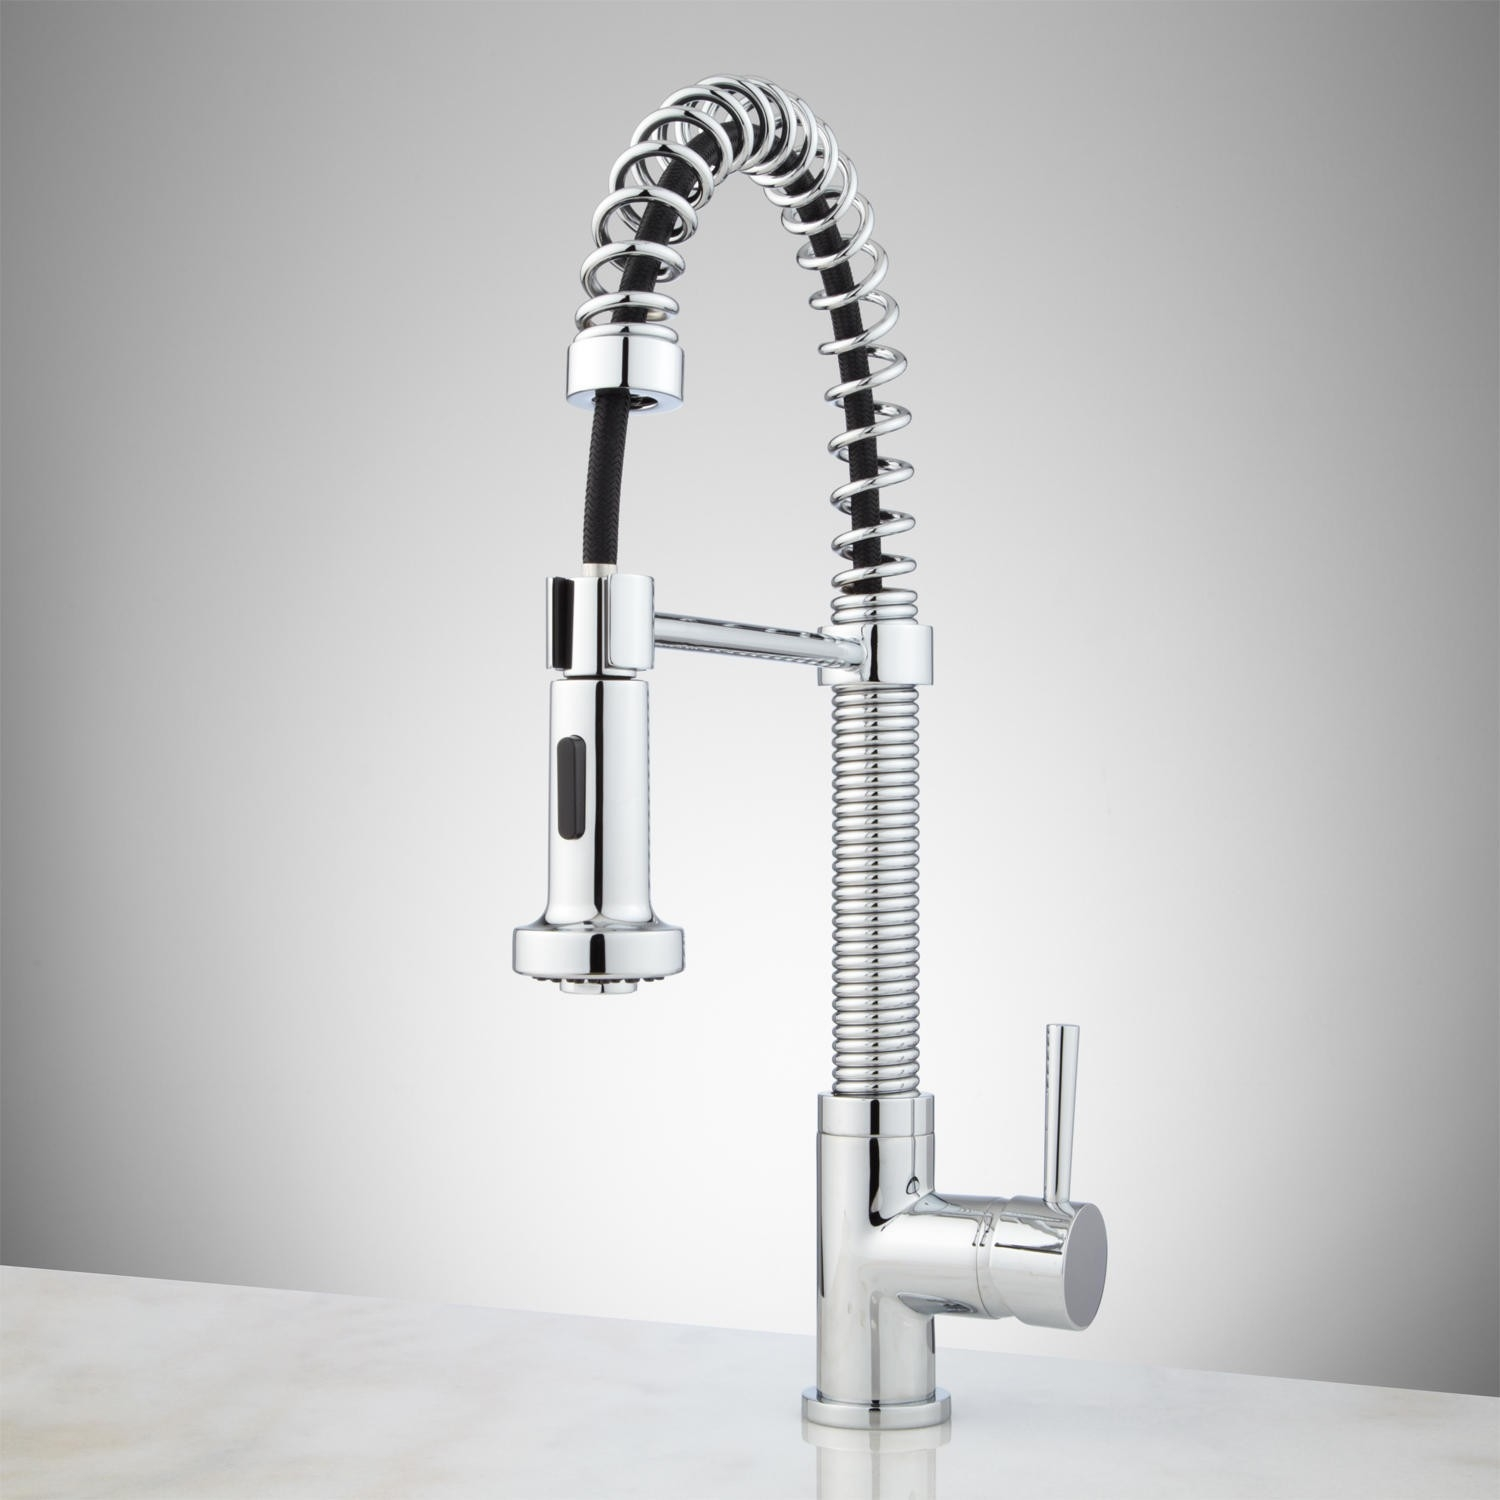 Ideas, 28 kitchen faucet trends general commercial faucets high intended for sizing 1500 x 1500  .